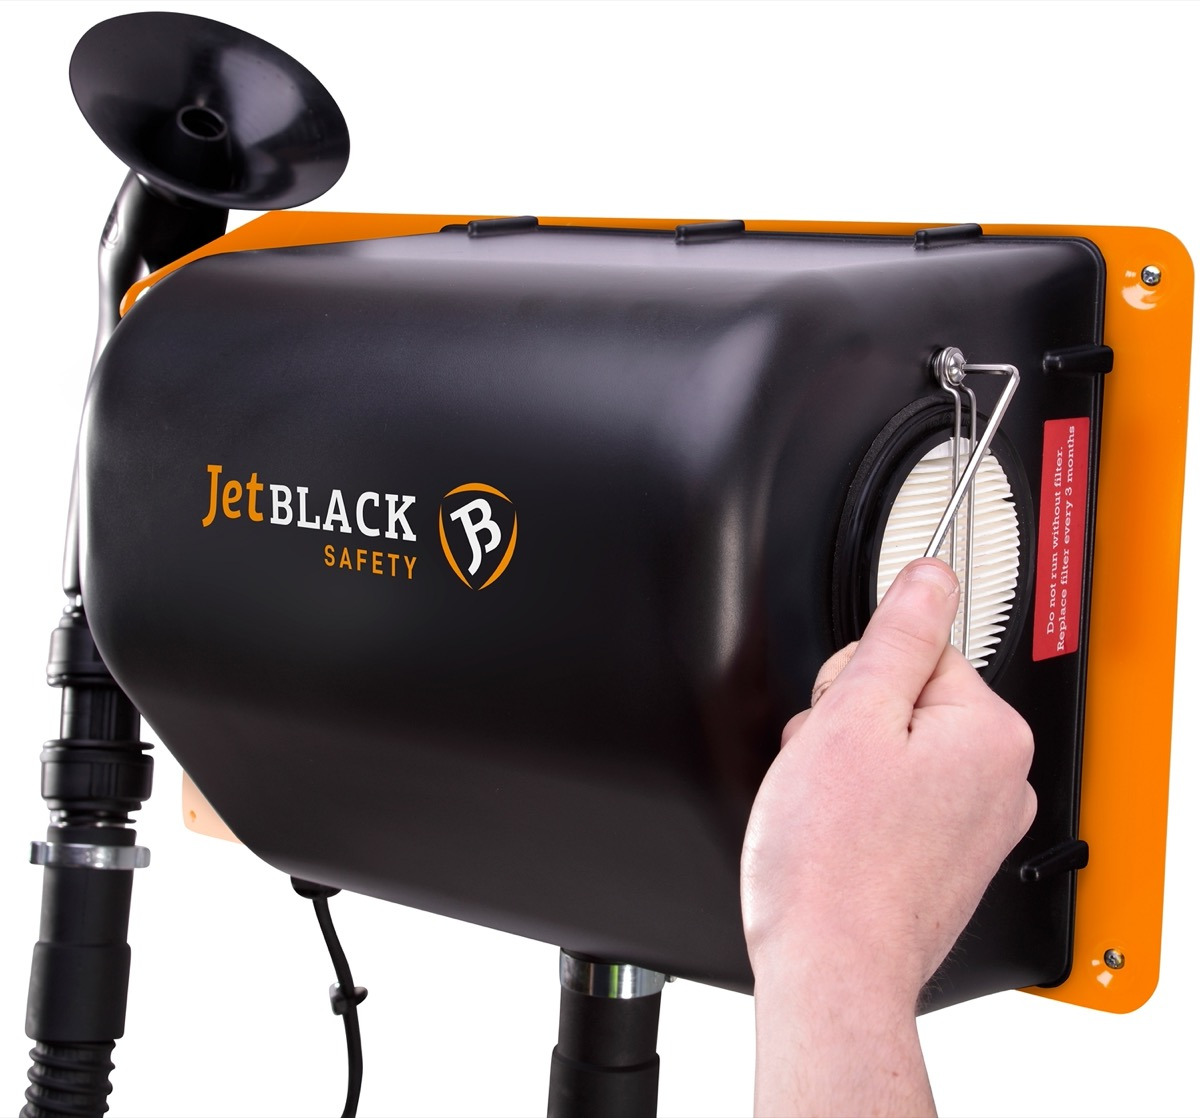 Wall mounted JetBlack Safety Personnel Cleaning Station with person's hand changing the filter